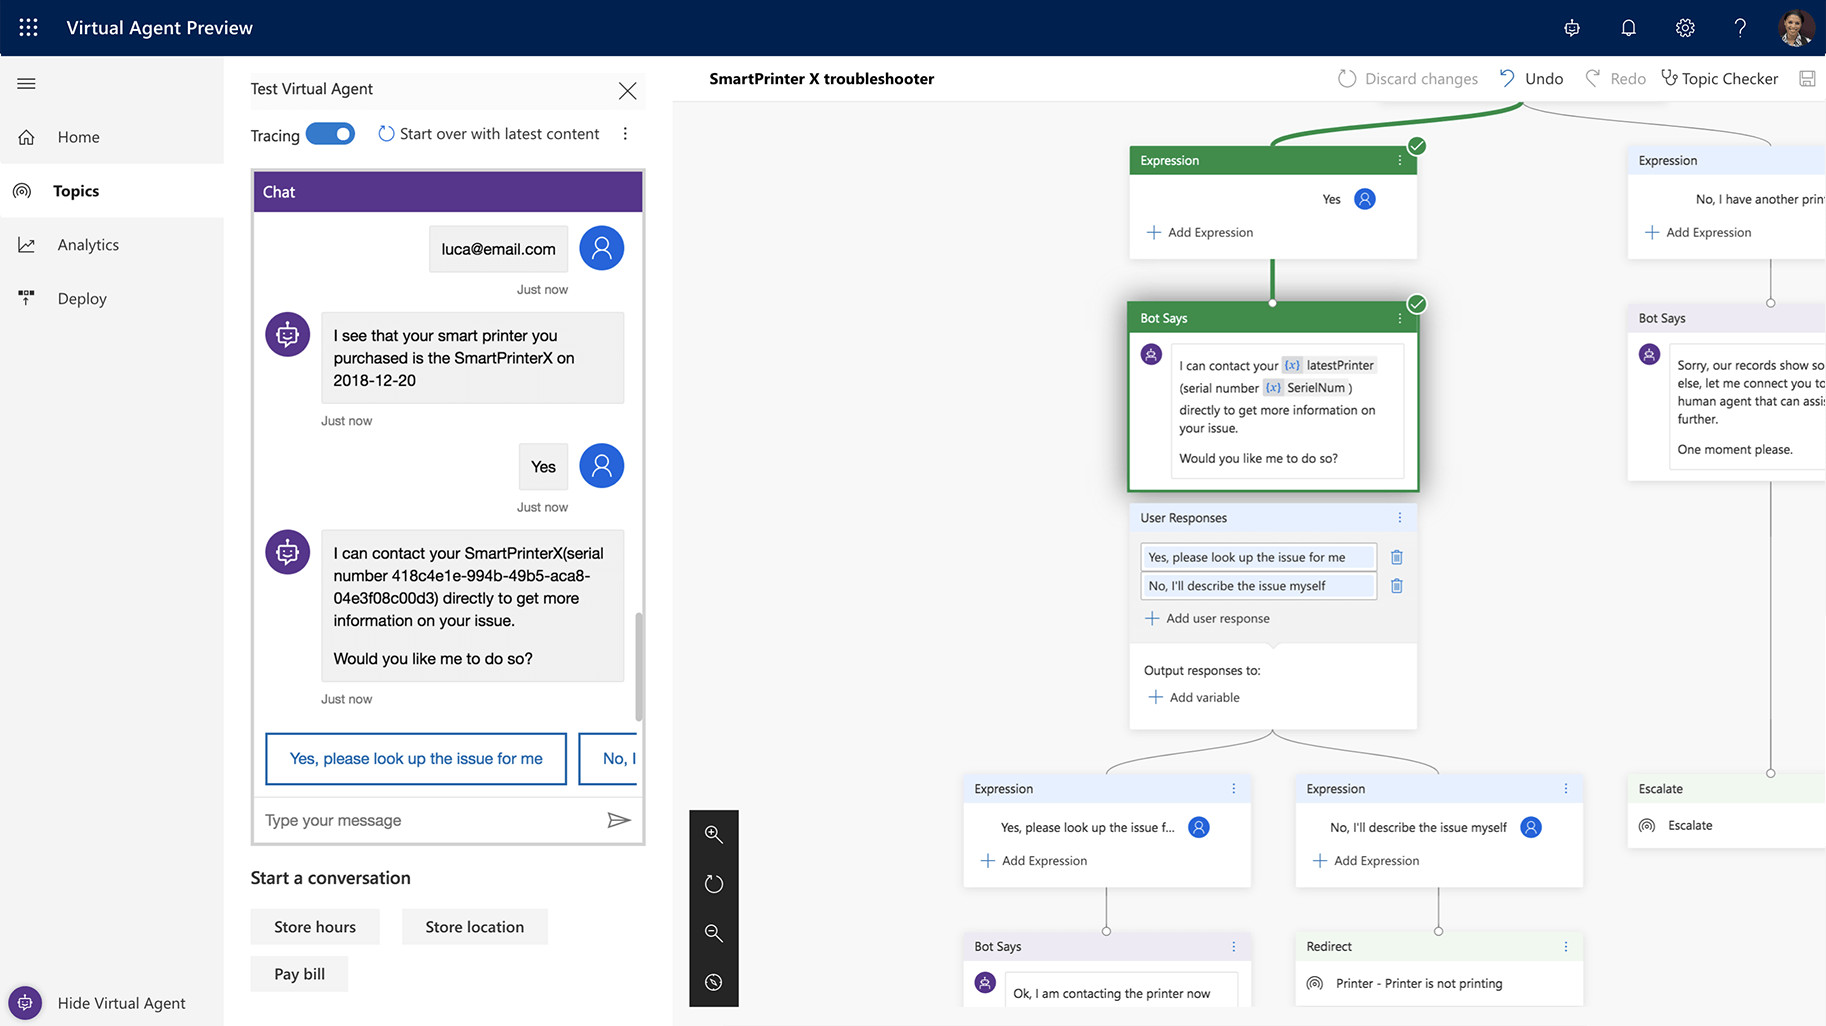 Dynamics 365 Virtual Agent now leverages Microsoft Flow for